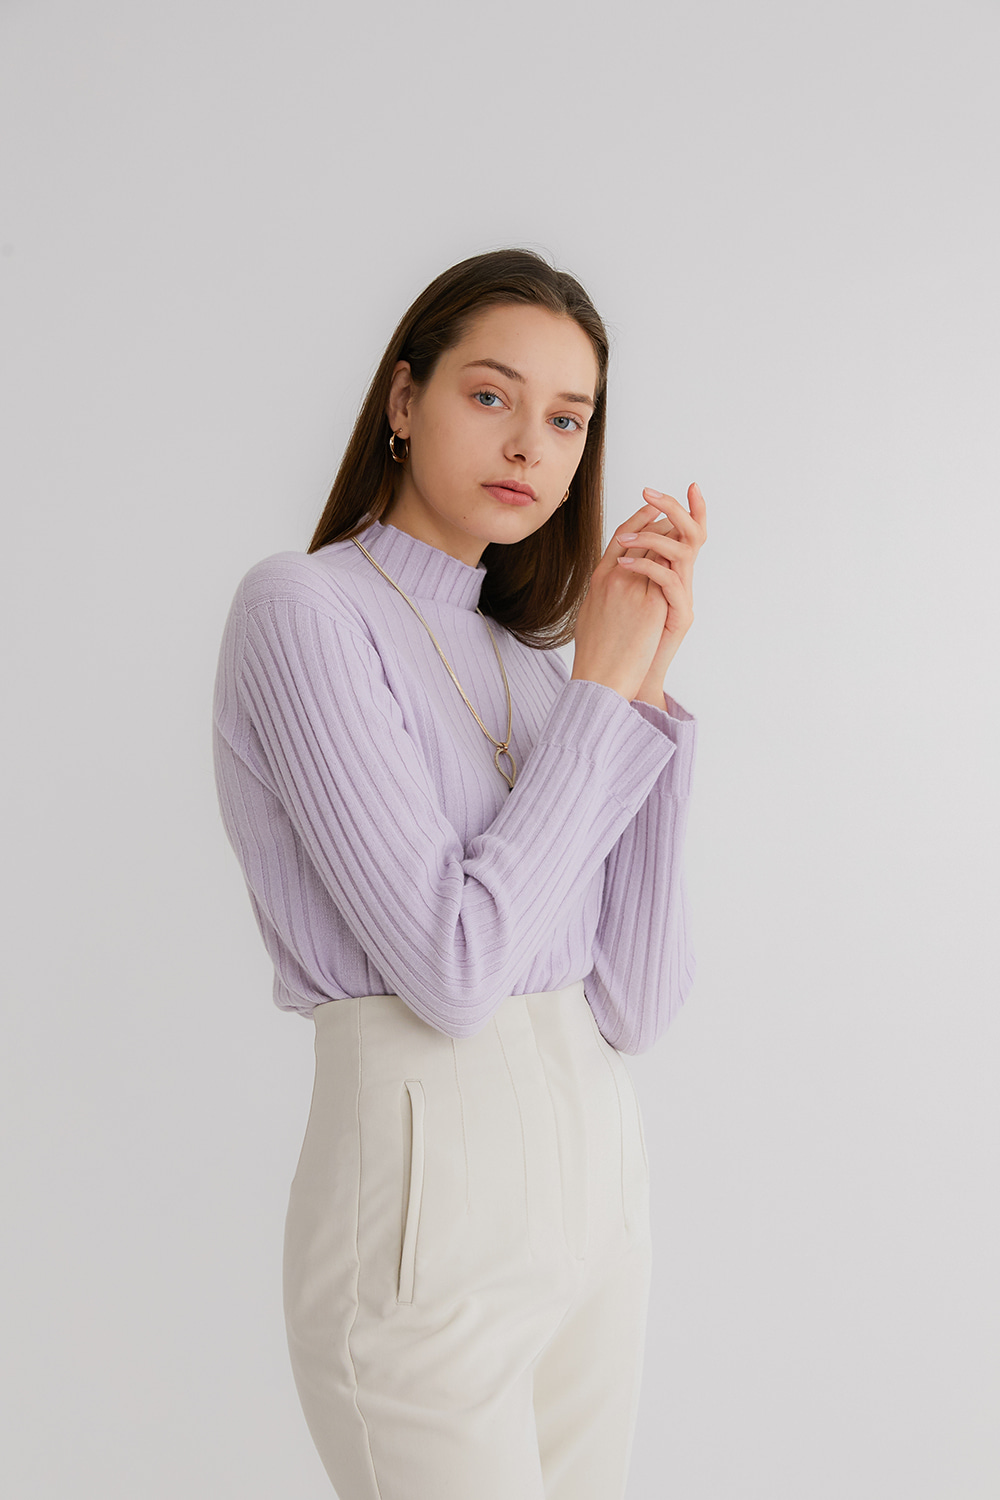 Pure cashmere100 ribbed soft-touch sweater by whole-garment knitting - Lavender (인기 상품/2차 재입고)